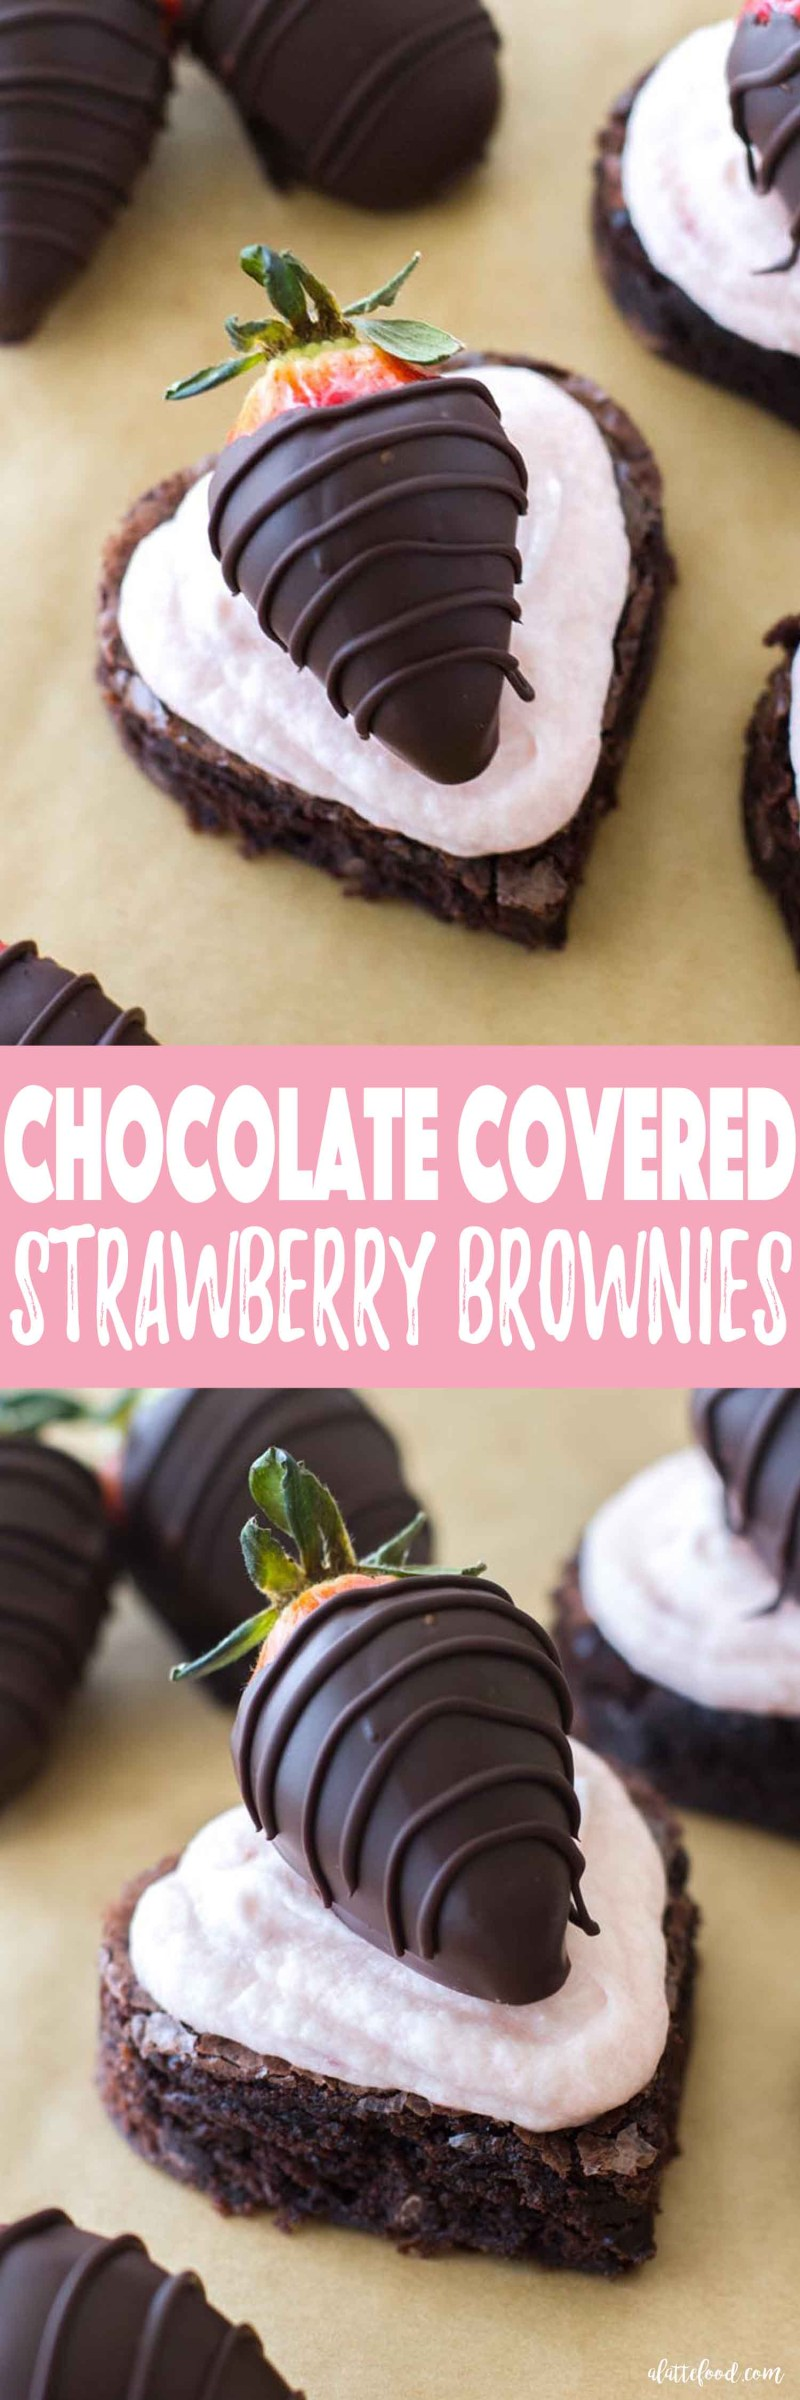 These homemade fudge brownies are topped with homemade strawberry buttercream and chocolate dipped strawberries. It's completely over-the-top and totally worth it. The sweetest Valentine's Day dessert!